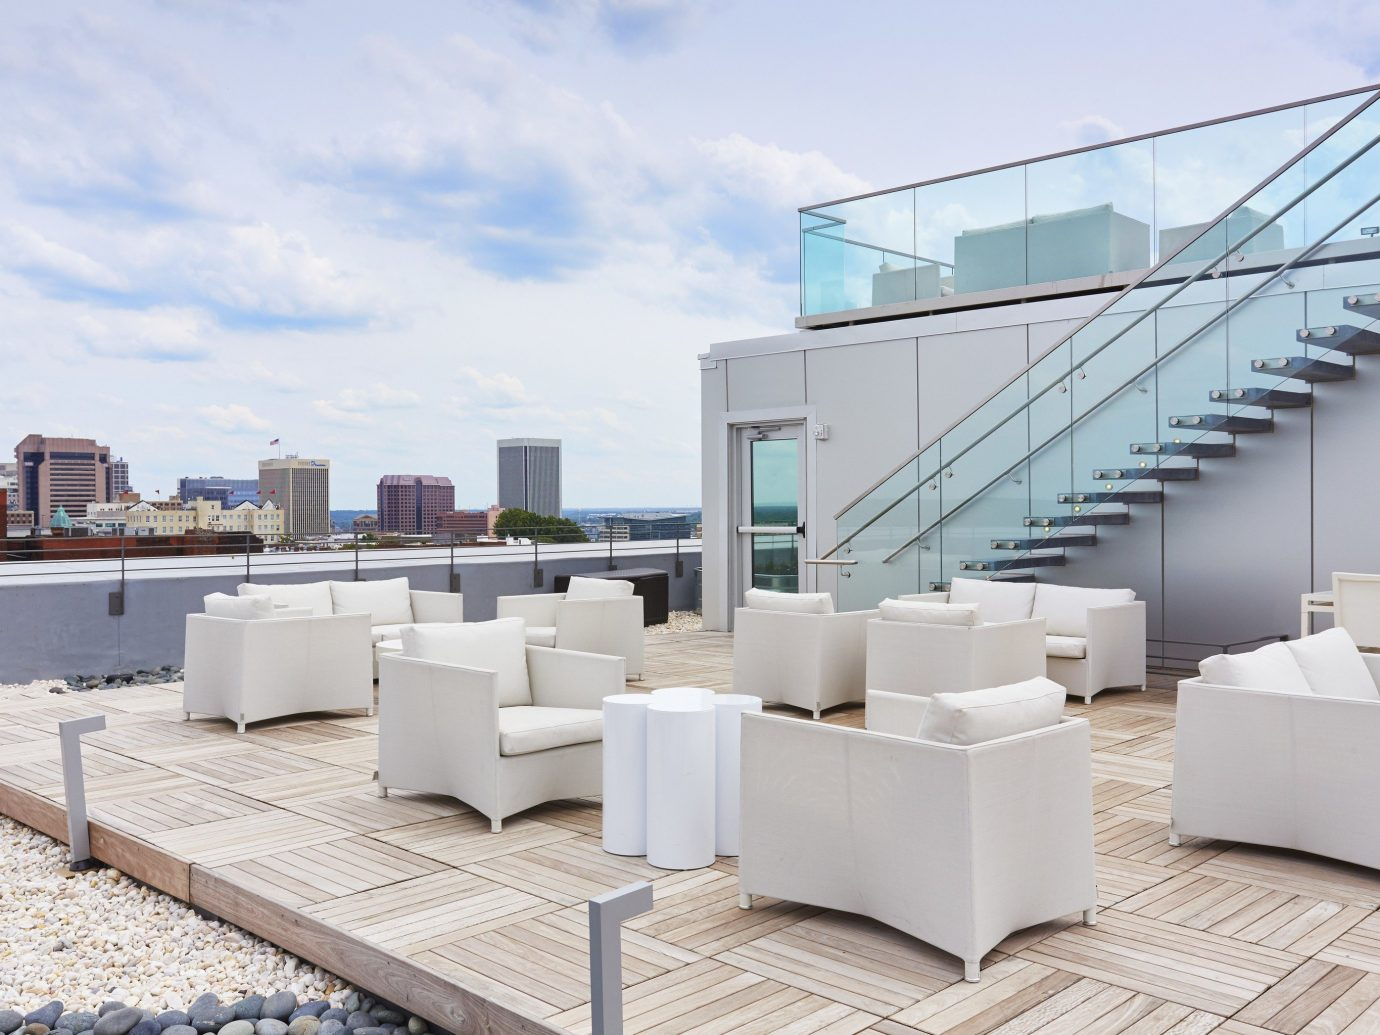 Spring Trips Trip Ideas sky outdoor Architecture headquarters